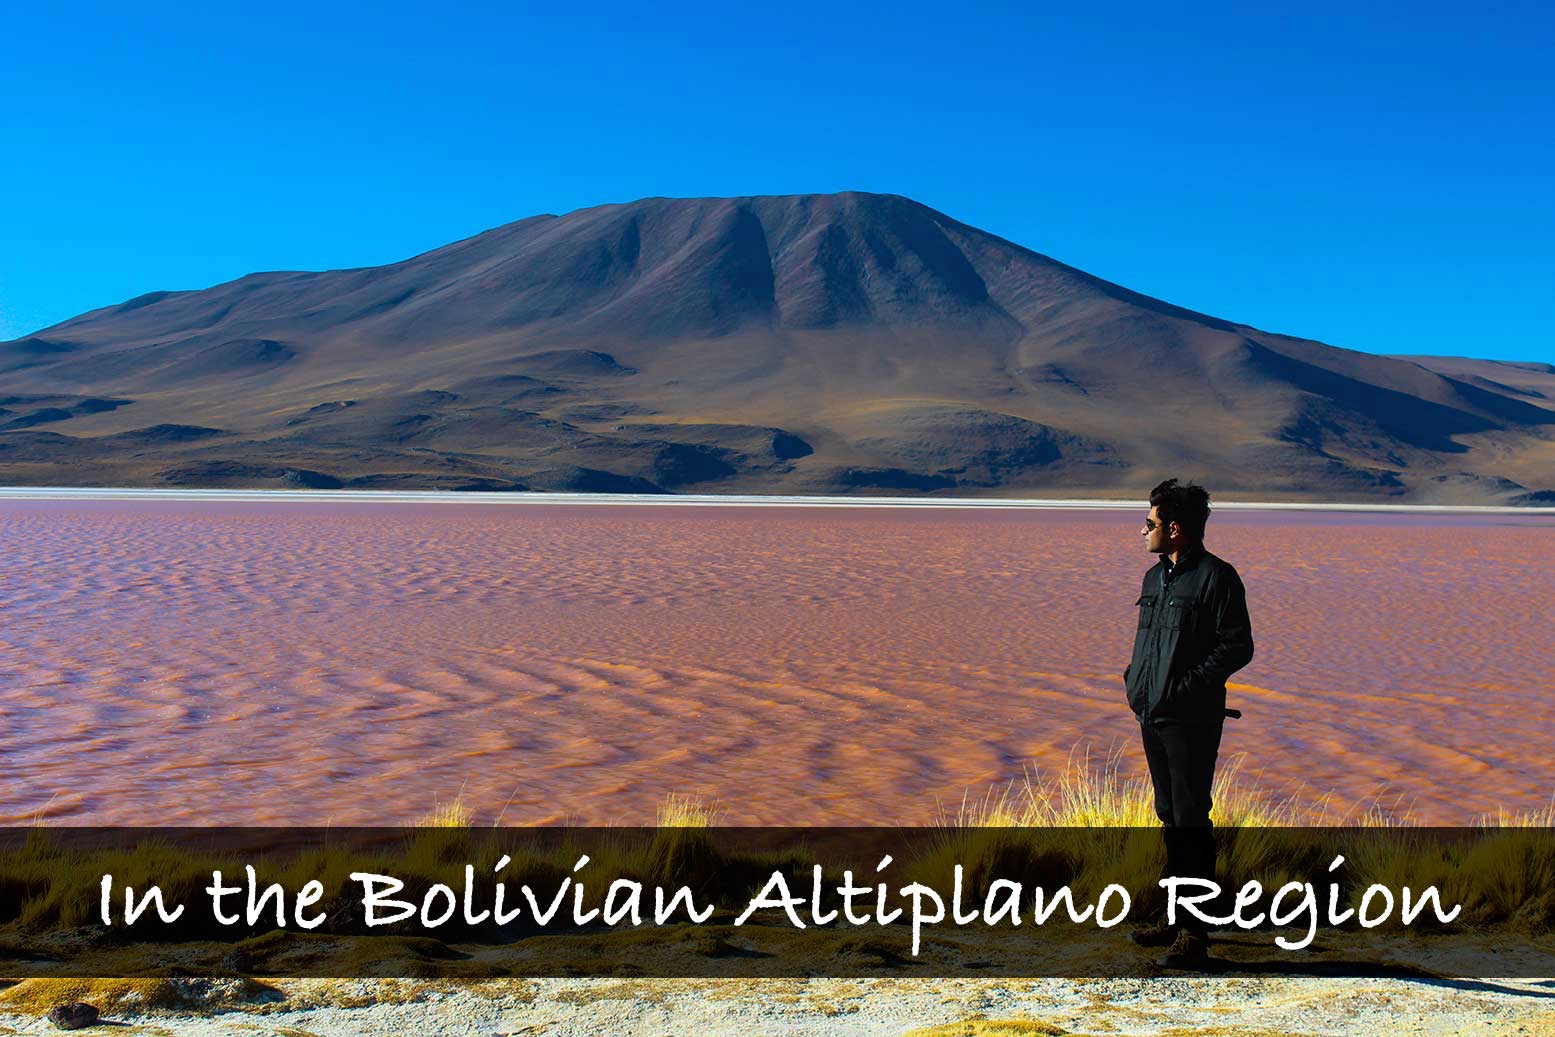 Journey through the Bolivian Altiplano Region